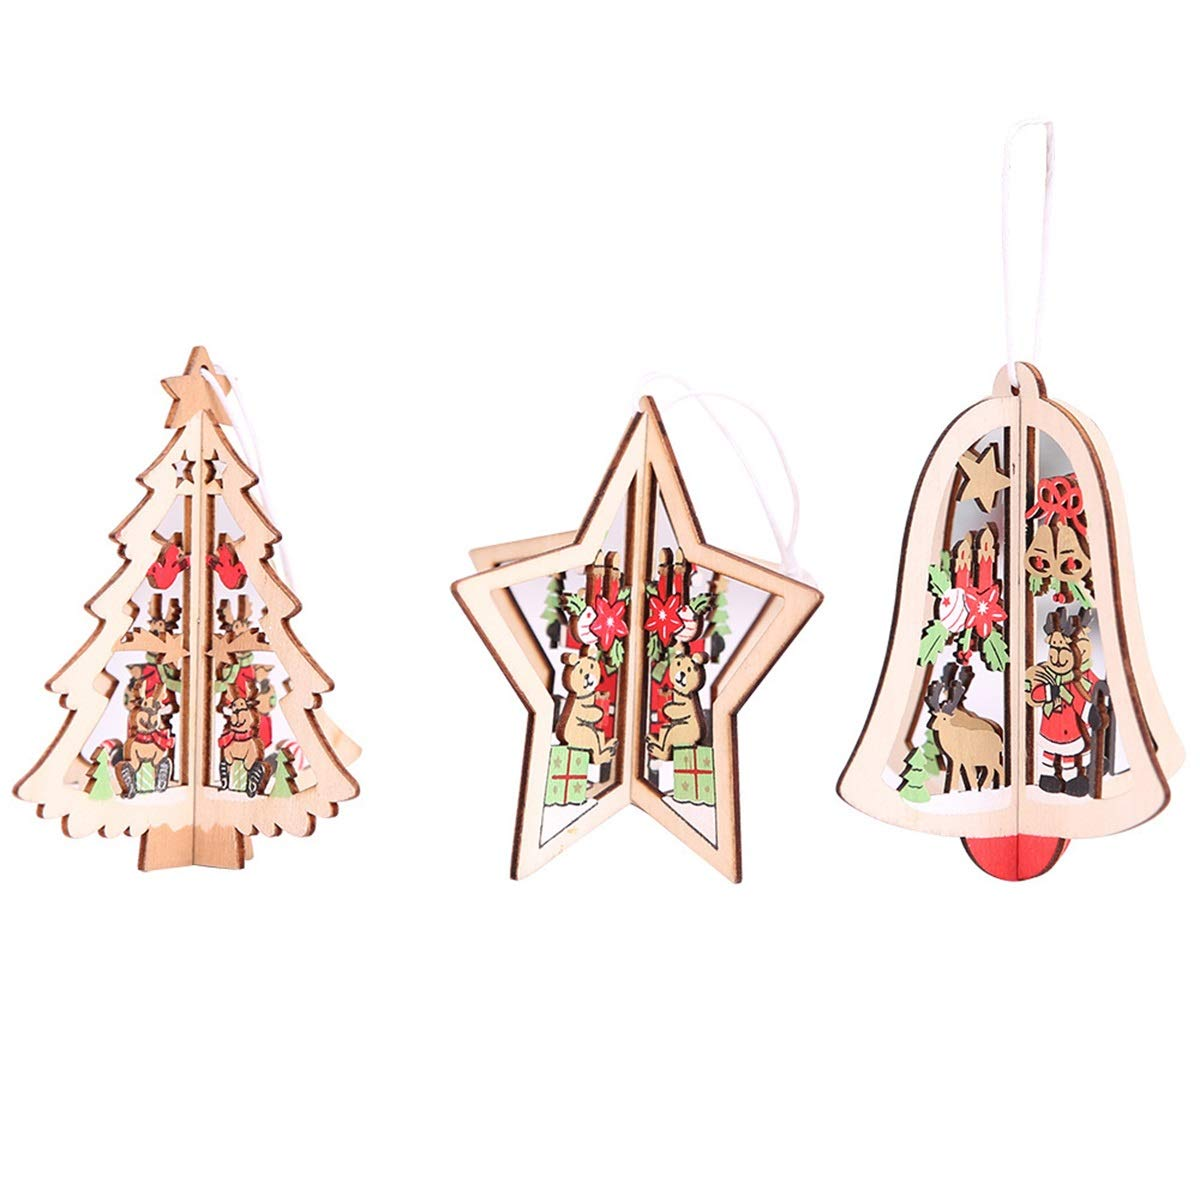 Yunhany Direct 1pc Christmas Tree Hanging Decorations Wooden Hollow Ornament Hanging Pendant Decoration (Color : Brown(Bell), Size : M)